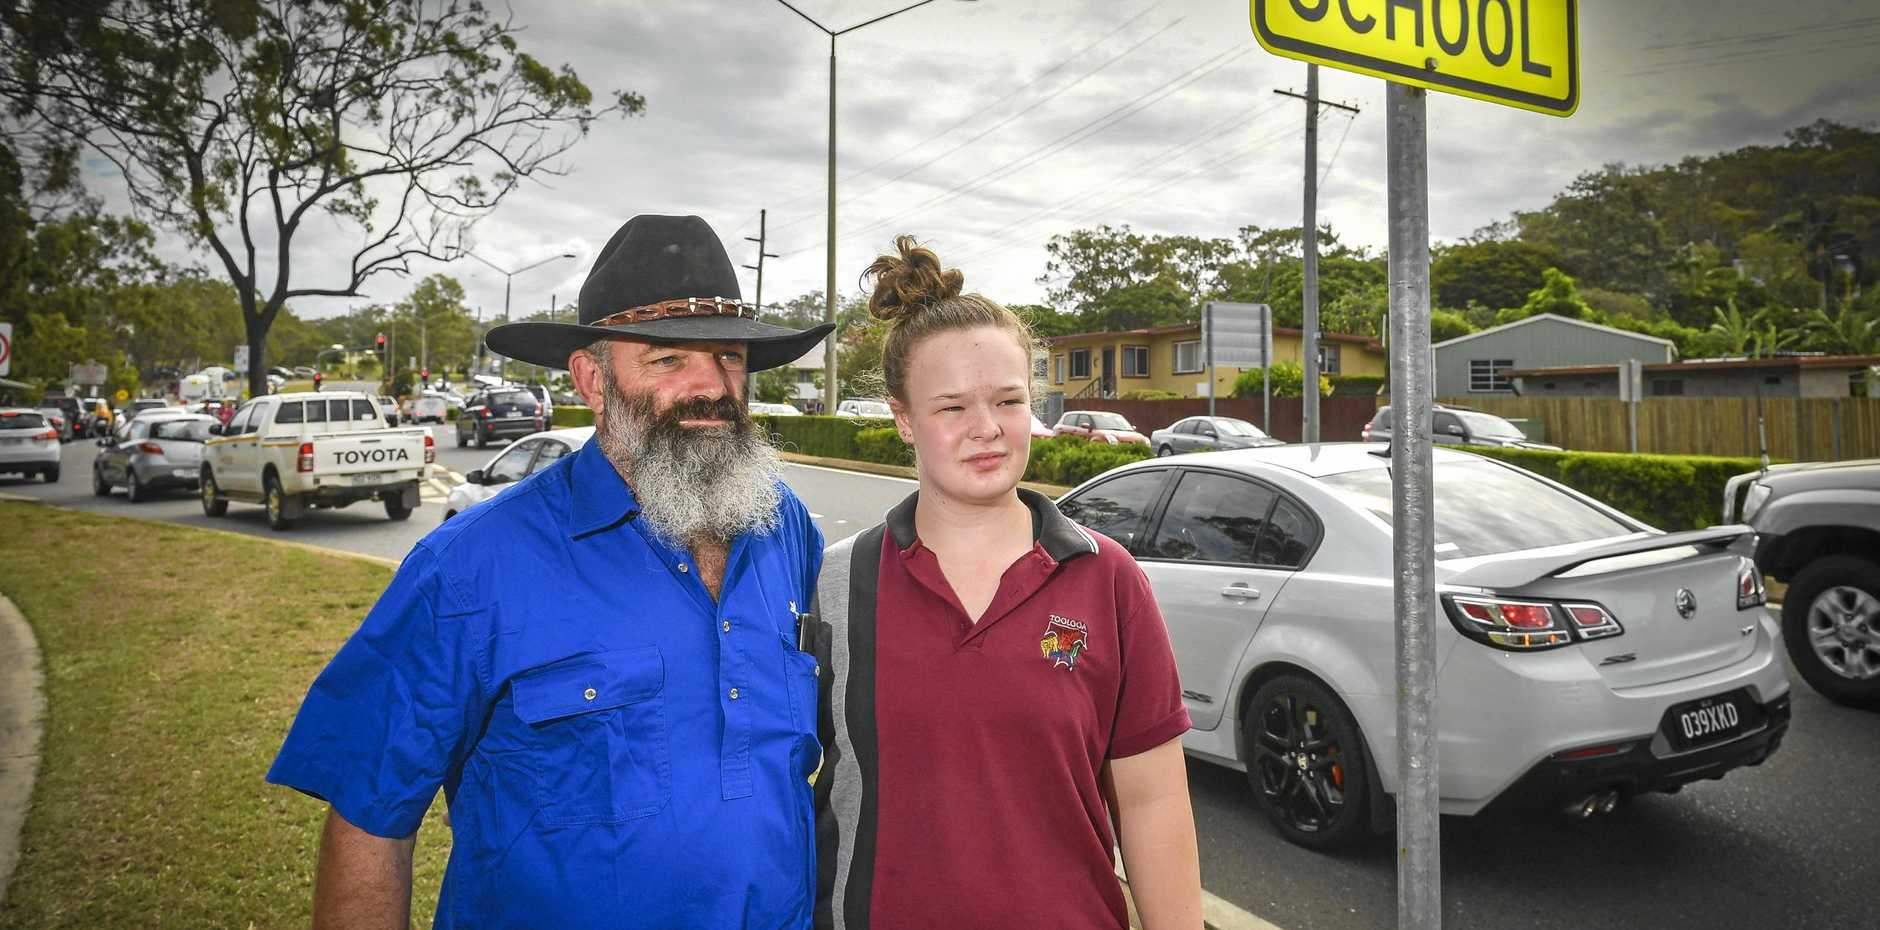 TRAFFIC CHAOS: Isabelle Thompson with stepfather Scott Elwell say the roundabout near the stop, drop and go zone at Toolooa State High is dangerous, after Isabelle had a minor traffic accident on her way home from school.